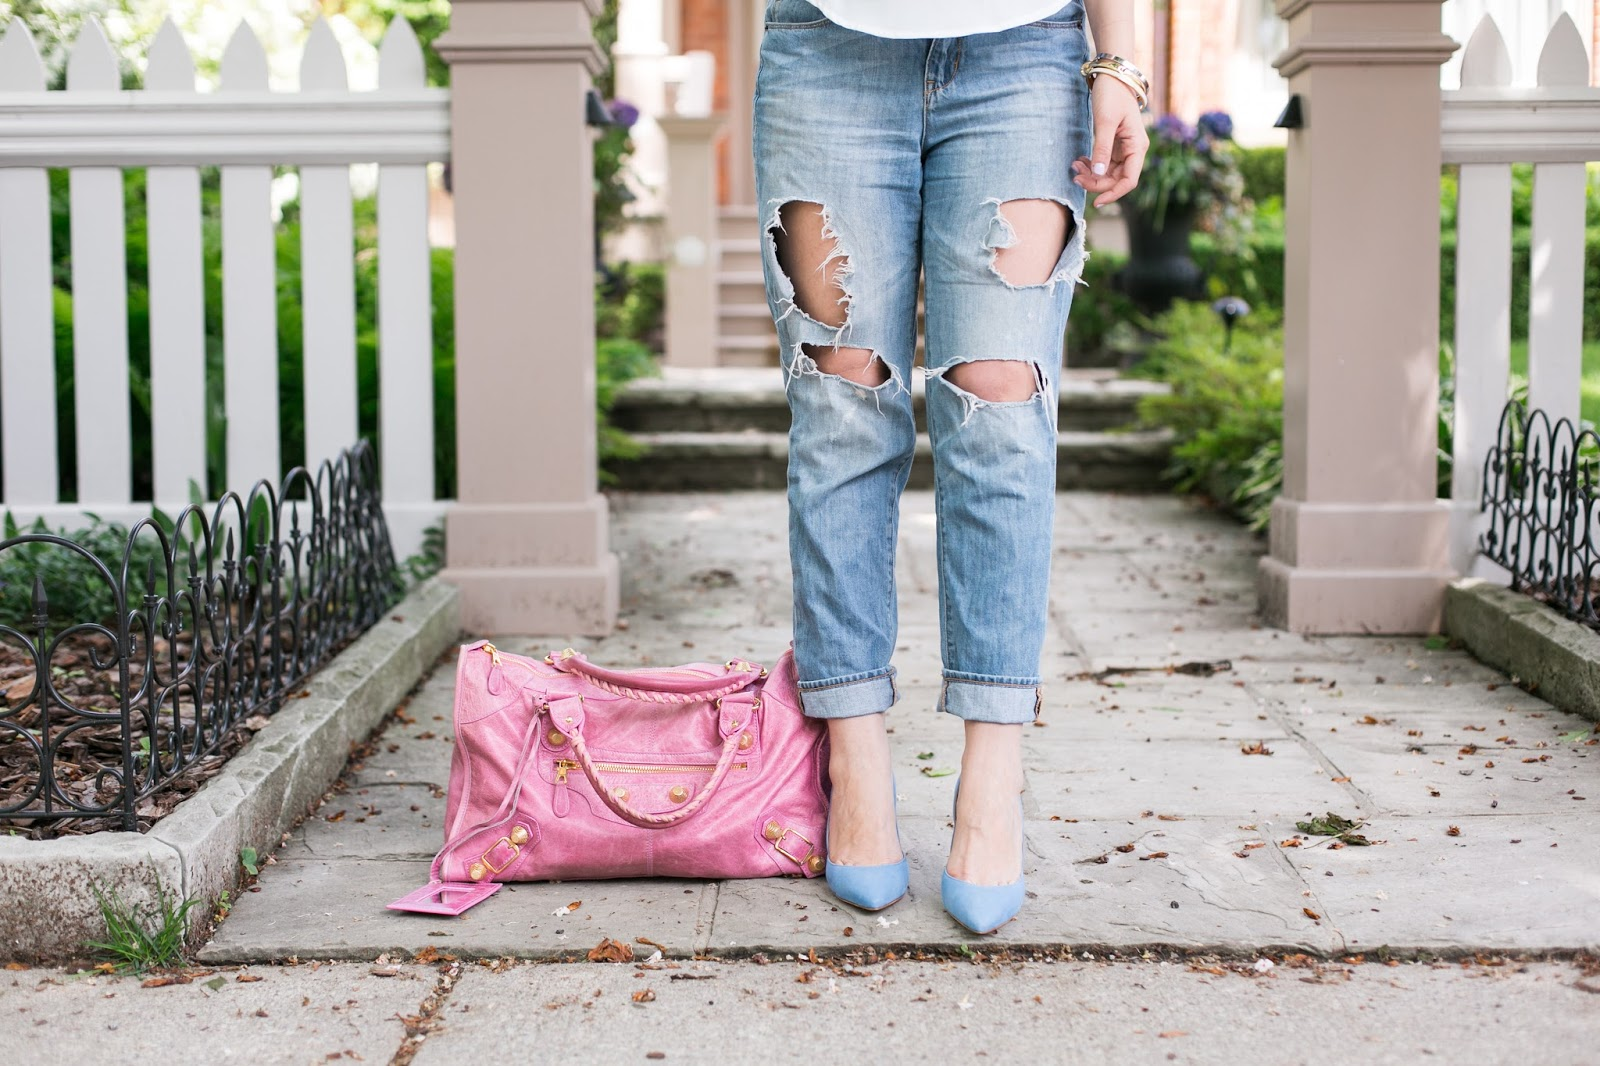 Sometimes you want to look like a Hollywood Star when you are travelling without necessarily breaking the bank or sacrificing your comfort. These are 5 quick tips is how you can travel in style: